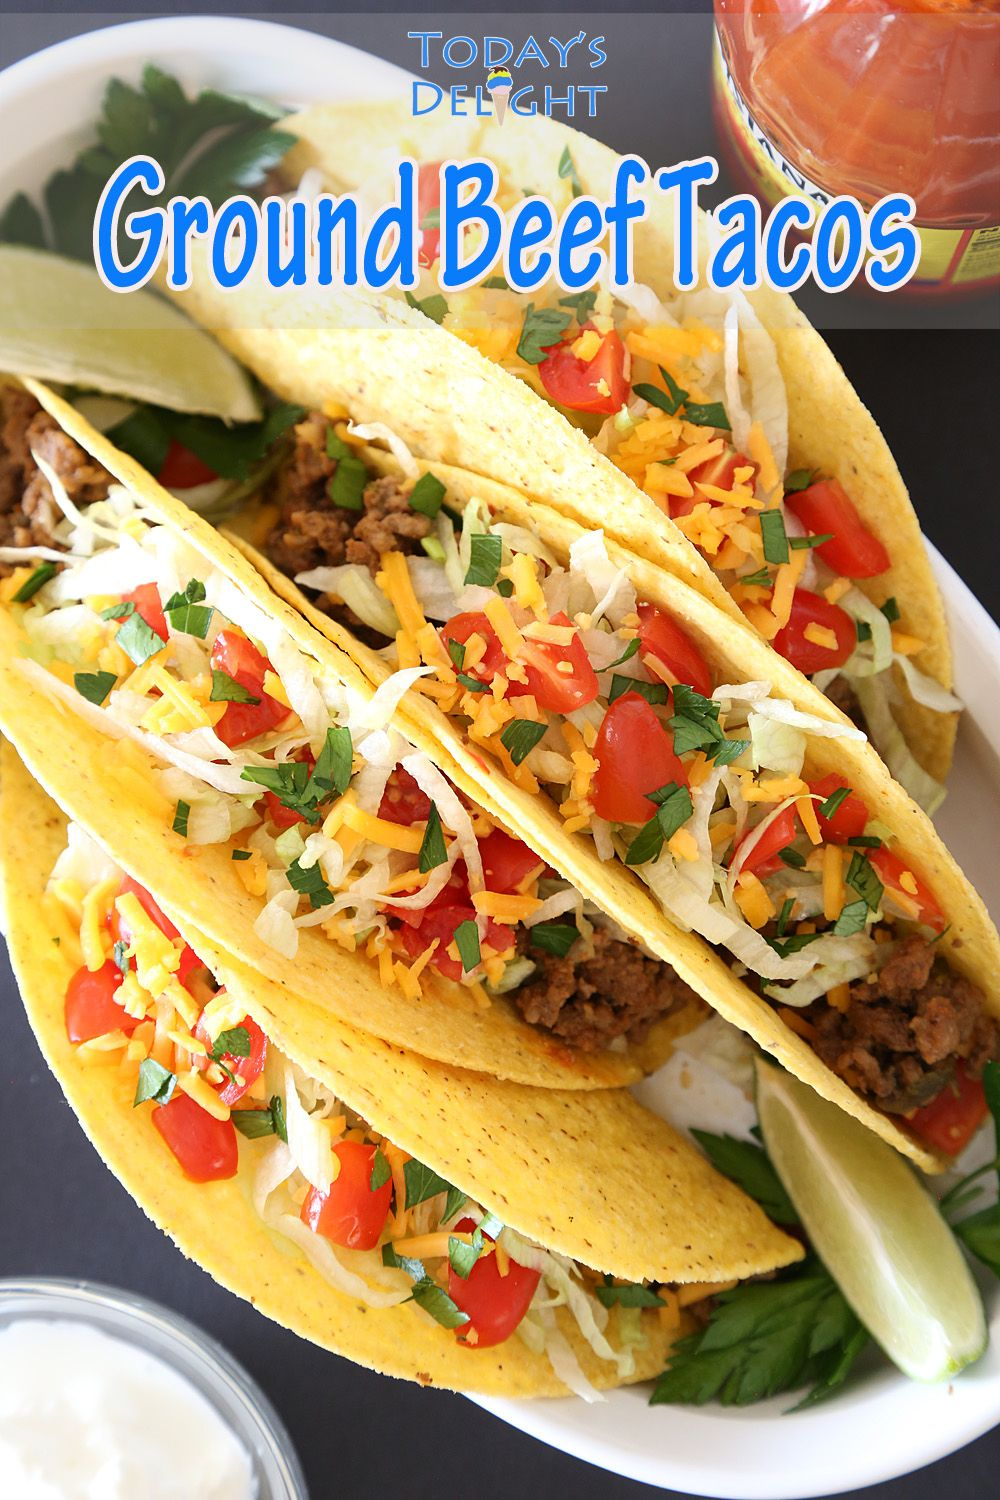 Ground Beef Tacos In 2020 Ground Beef Tacos Tacos Beef Beef Tacos Recipes